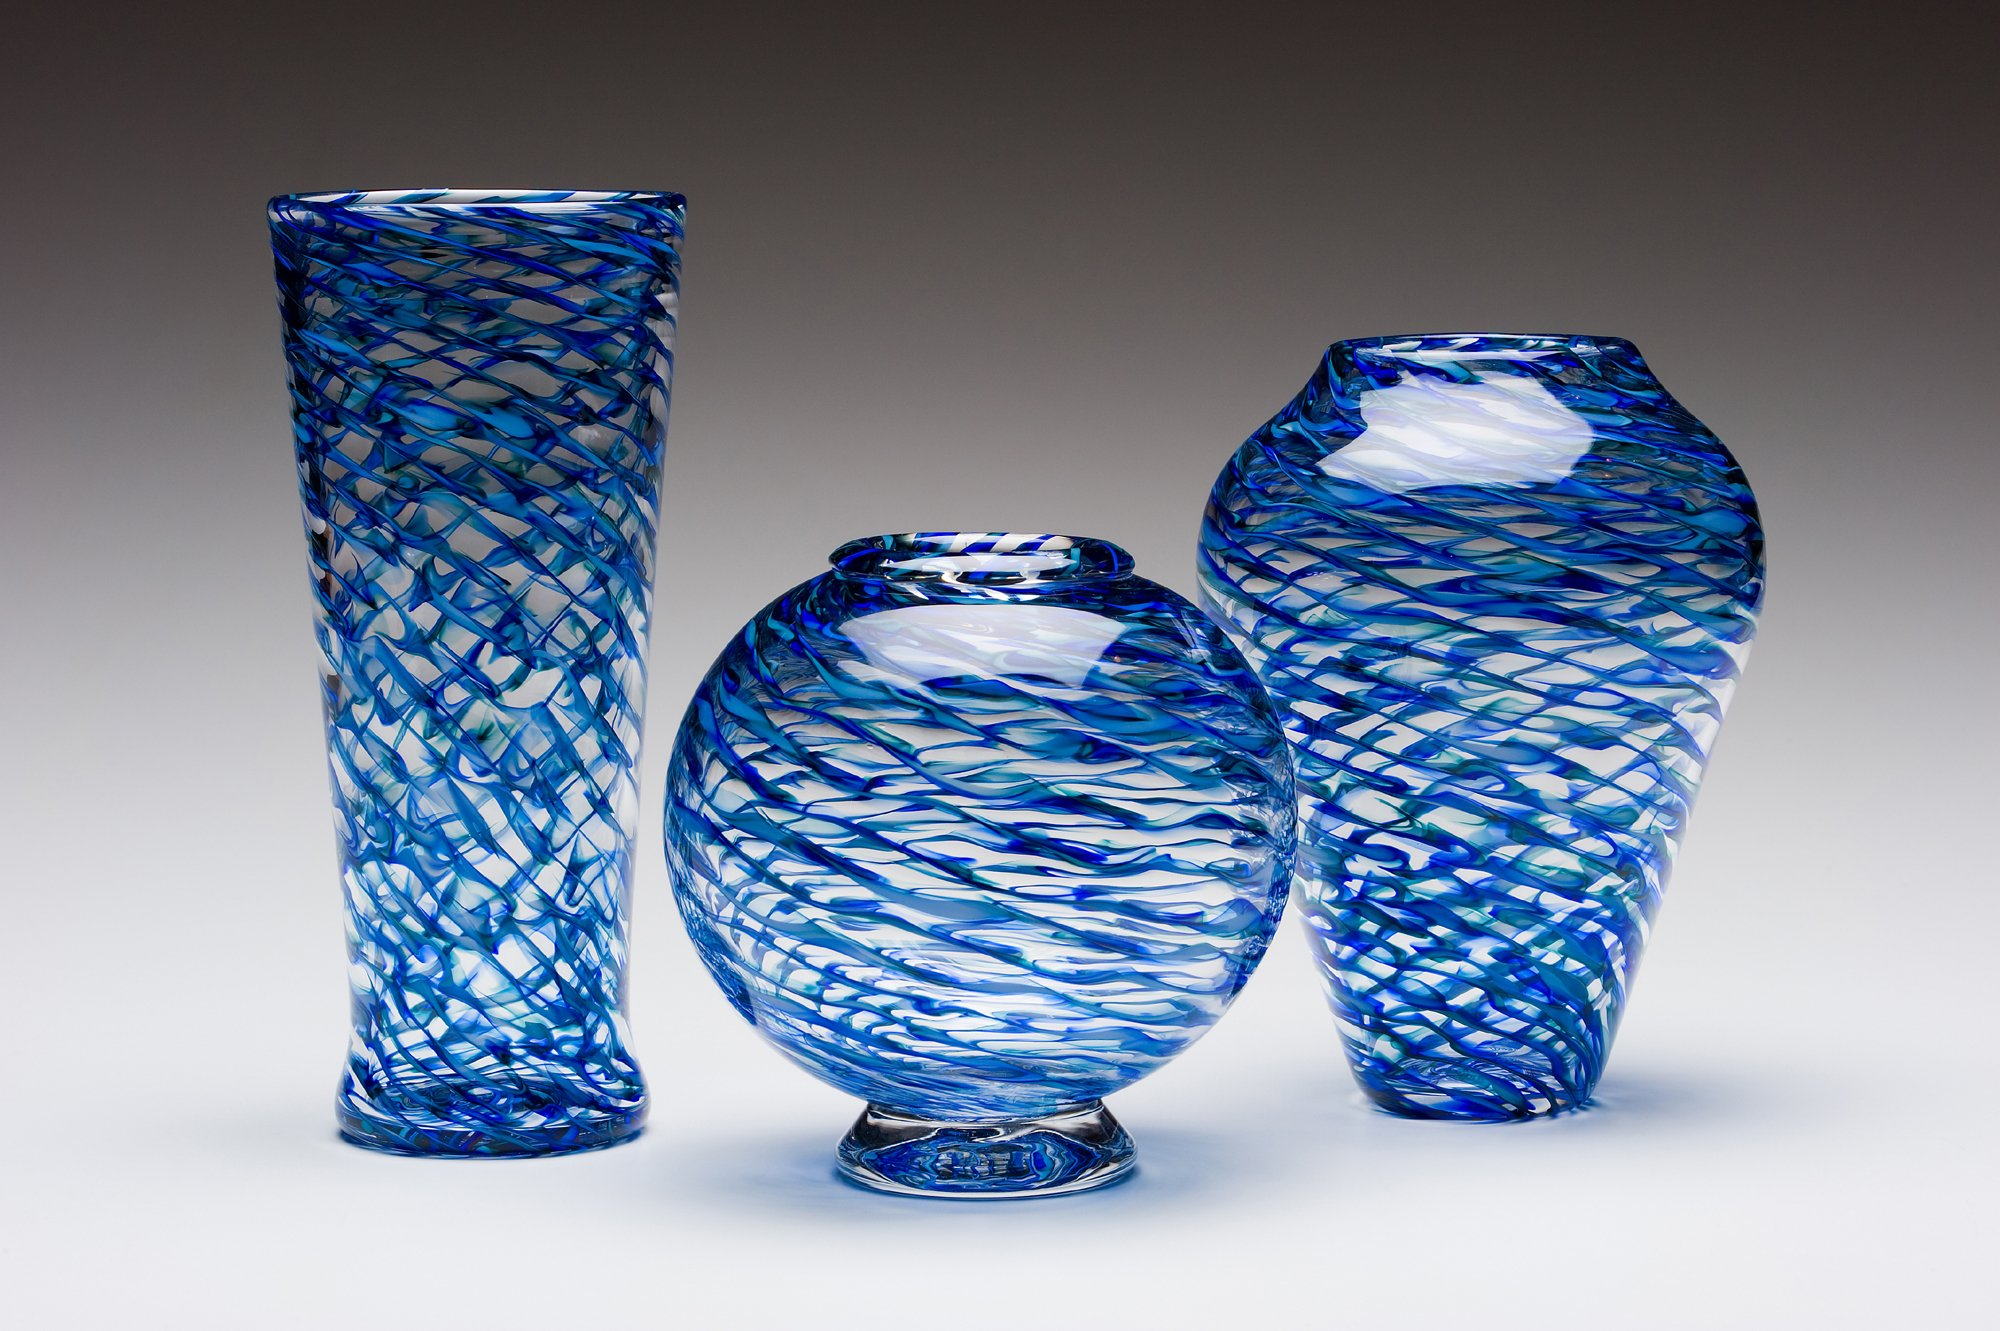 ripple vases by kenny pieper art glass vase artful home. Black Bedroom Furniture Sets. Home Design Ideas